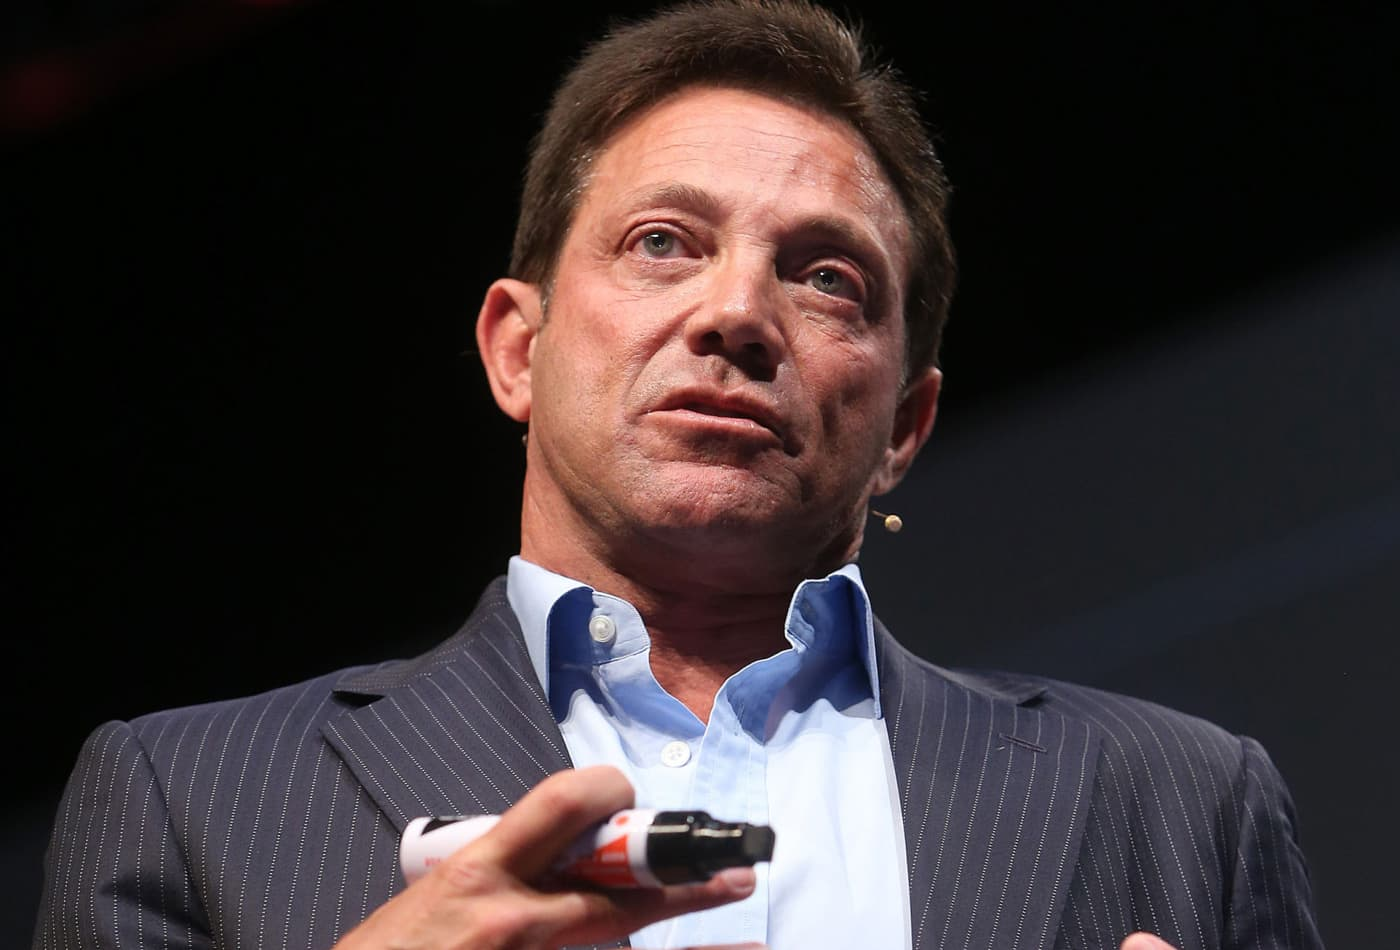 Wolf of Wall Street' Jordan Belfort: 'Get out' of bitcoin